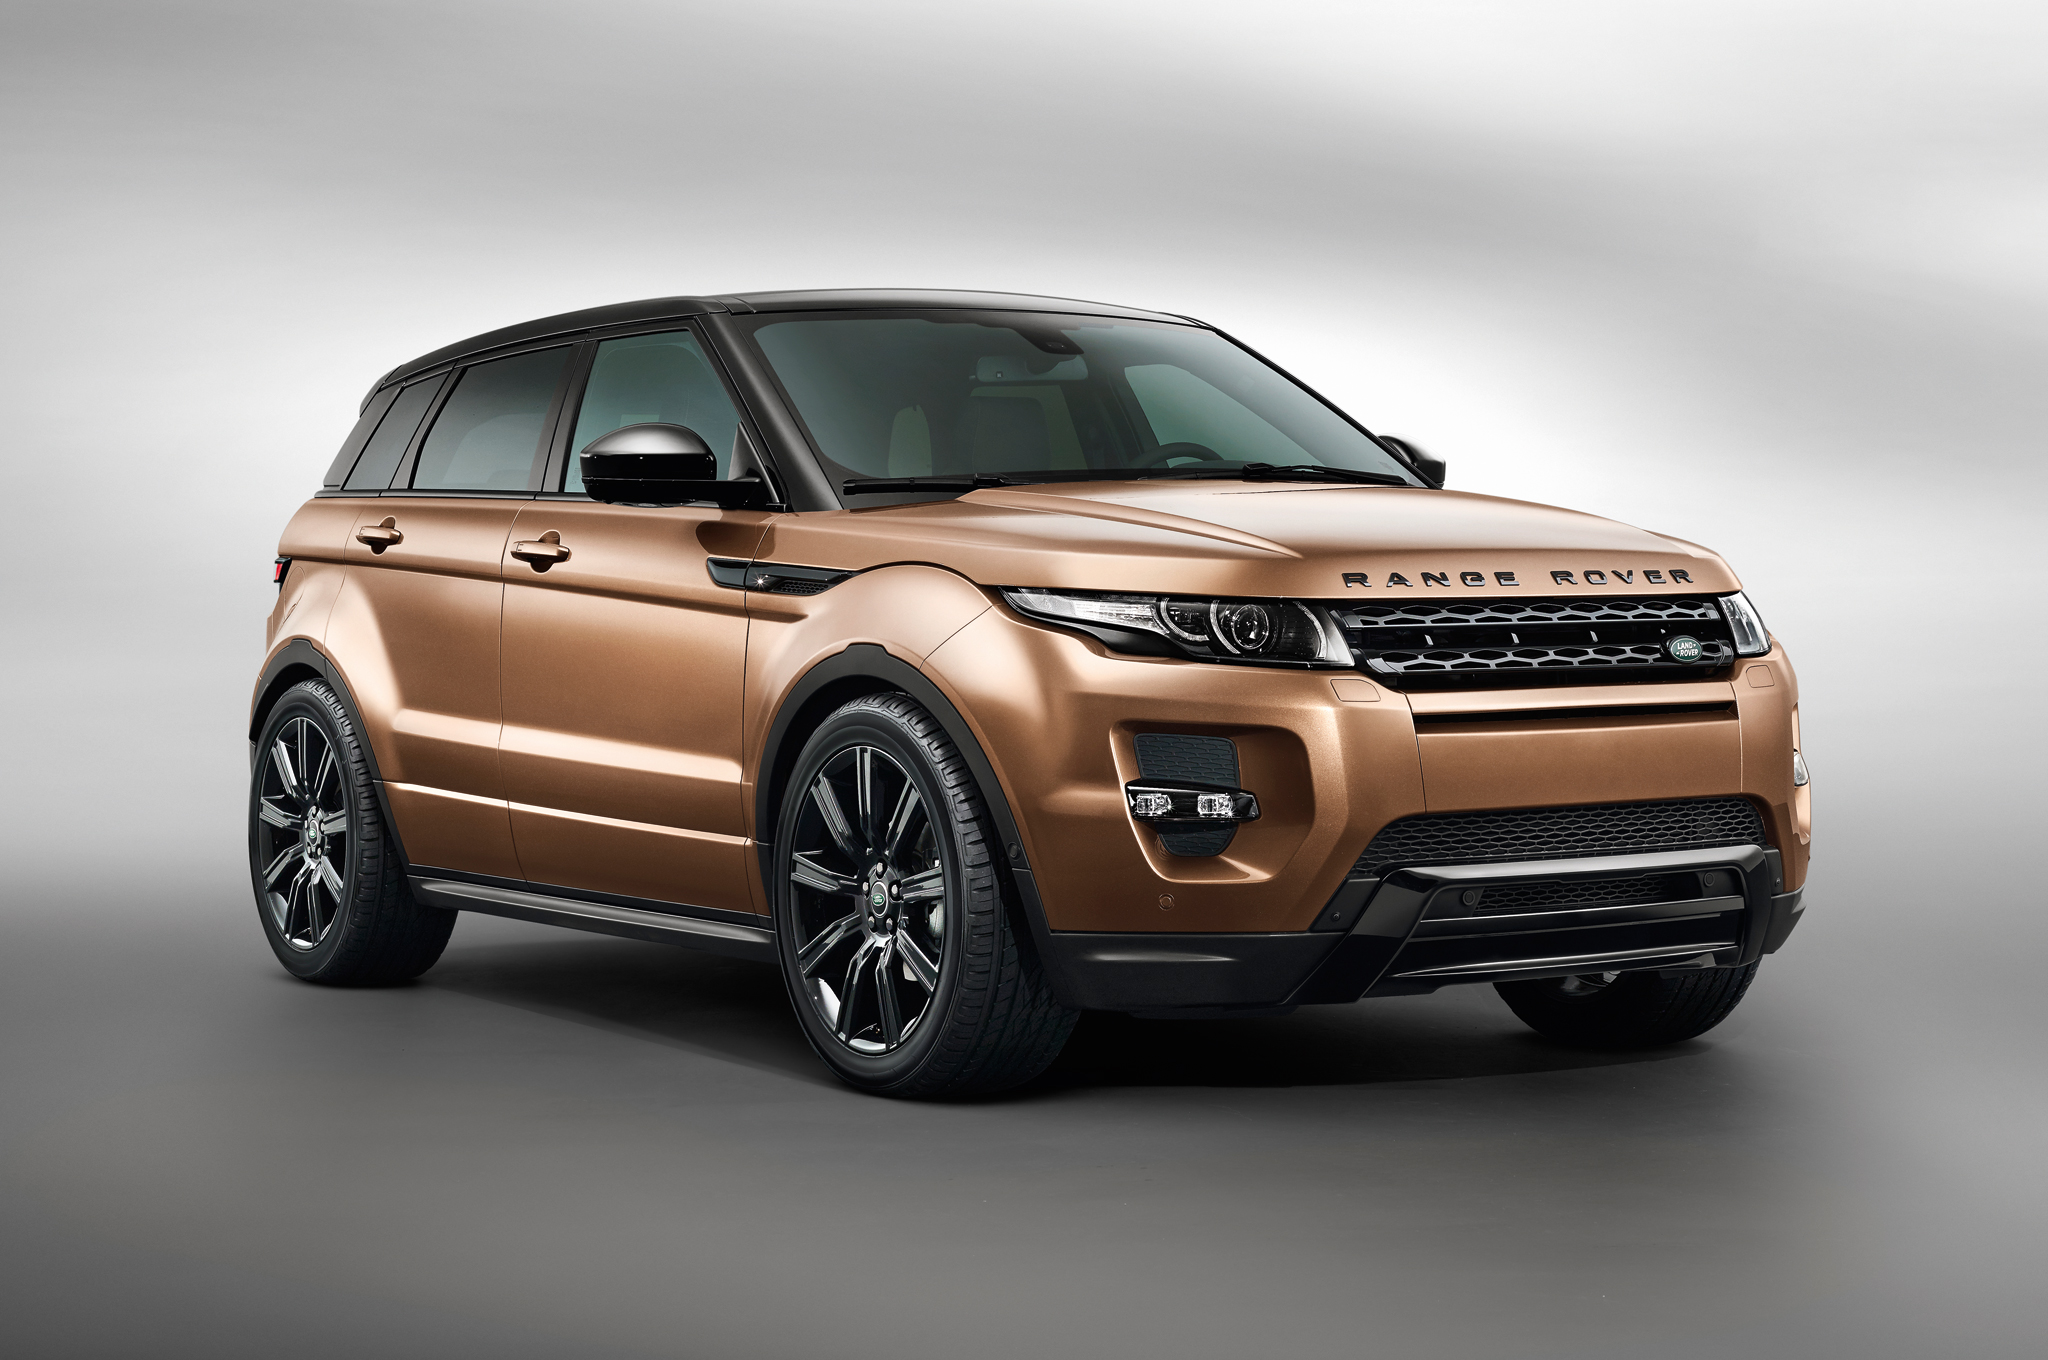 Official: 2014 Range Rover Evoque Gets 9A, Other Updates